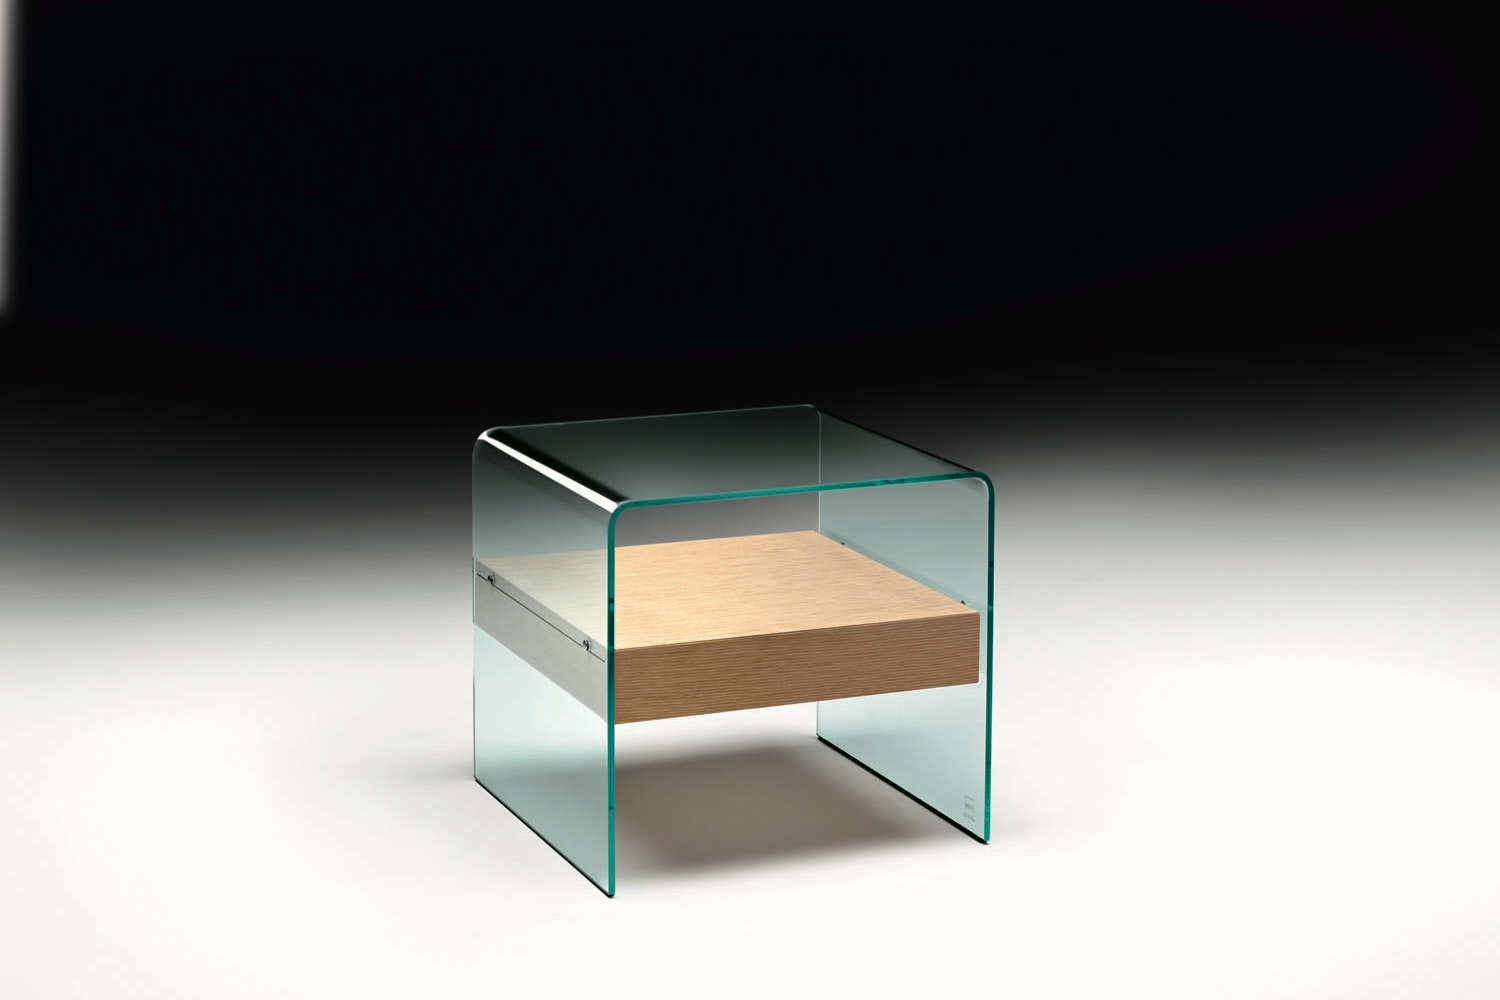 Rialto Night Bedside Table by CRS Fiam for Fiam Italia